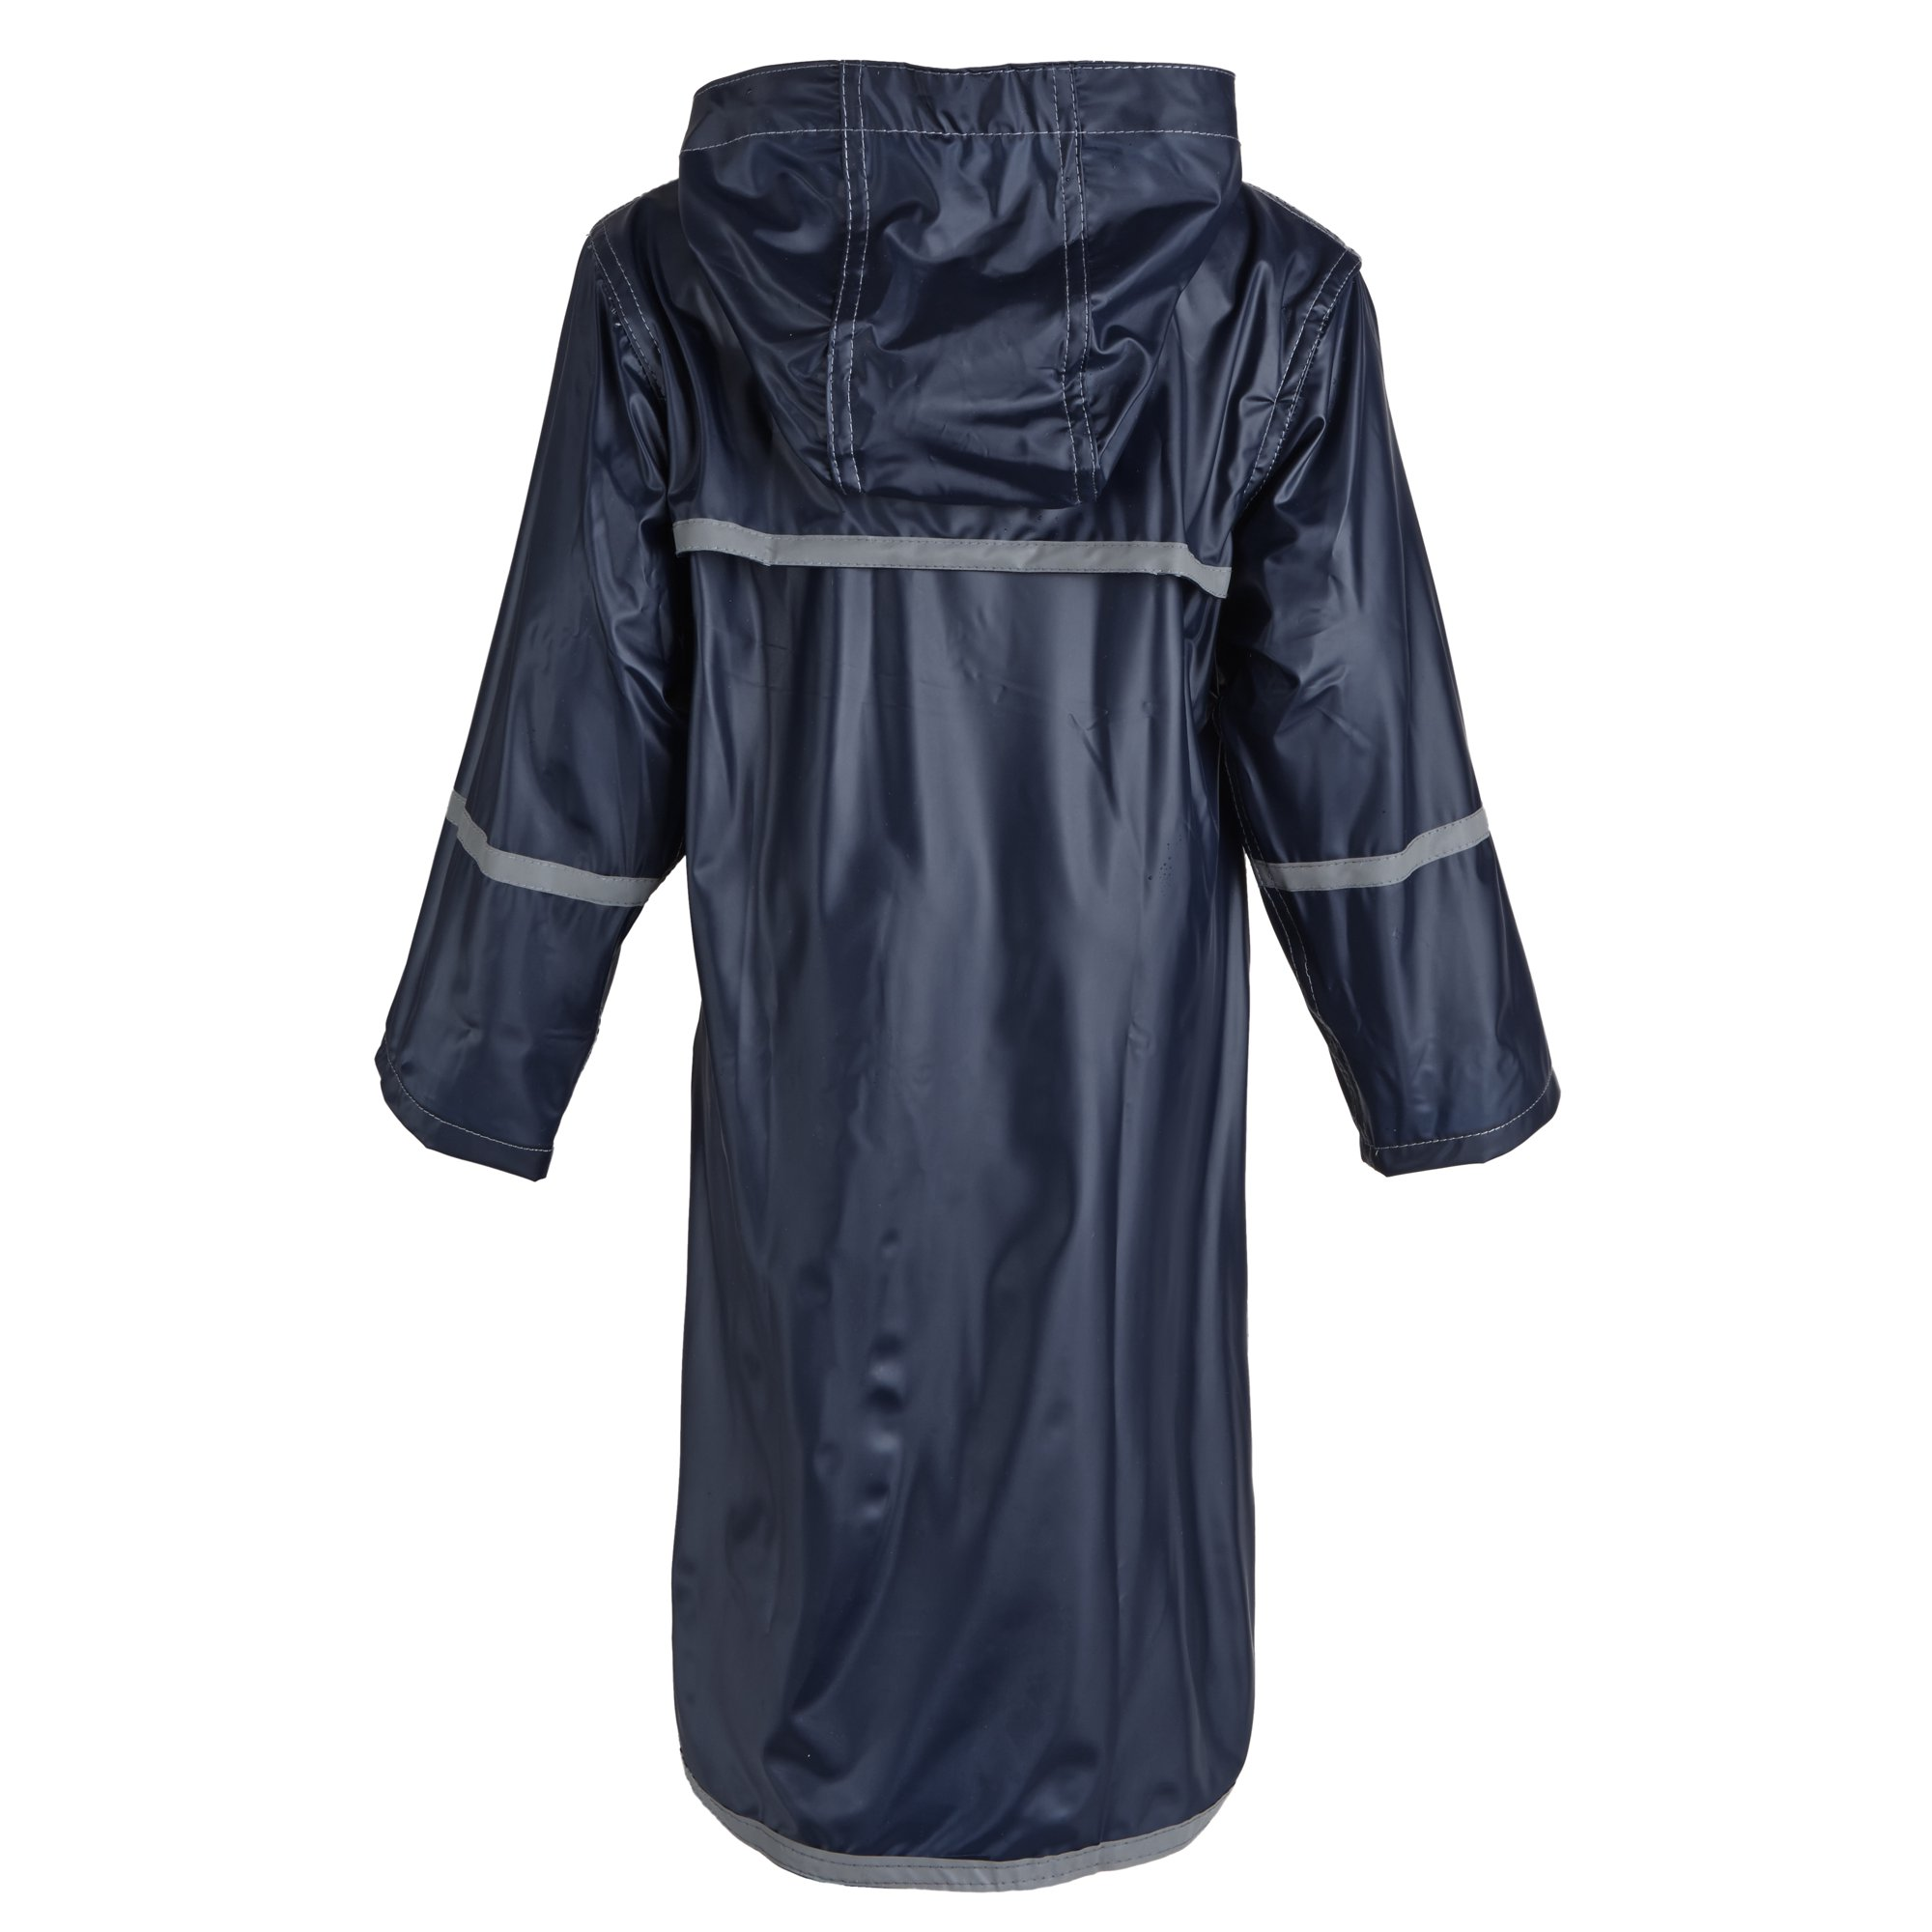 88e809f0d785 Buy Girls Kids Waterproof Full Length Long Hooded Raincoat Jacket ...